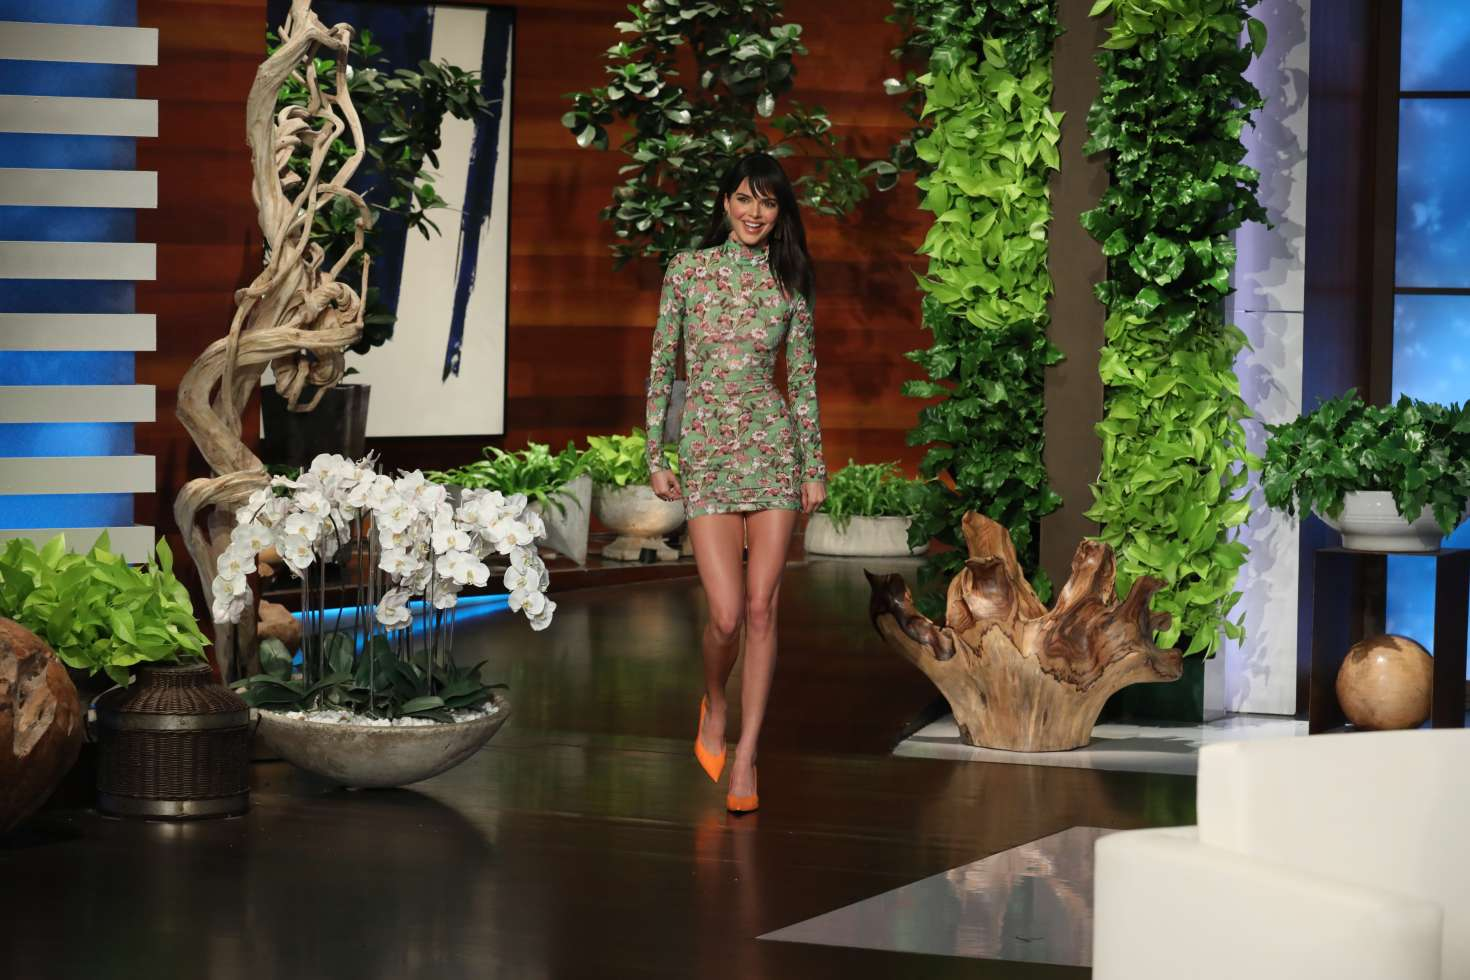 Kendall Jenner rocking a formfitting sea green dress with full sleeves, floral print and a turtleneck